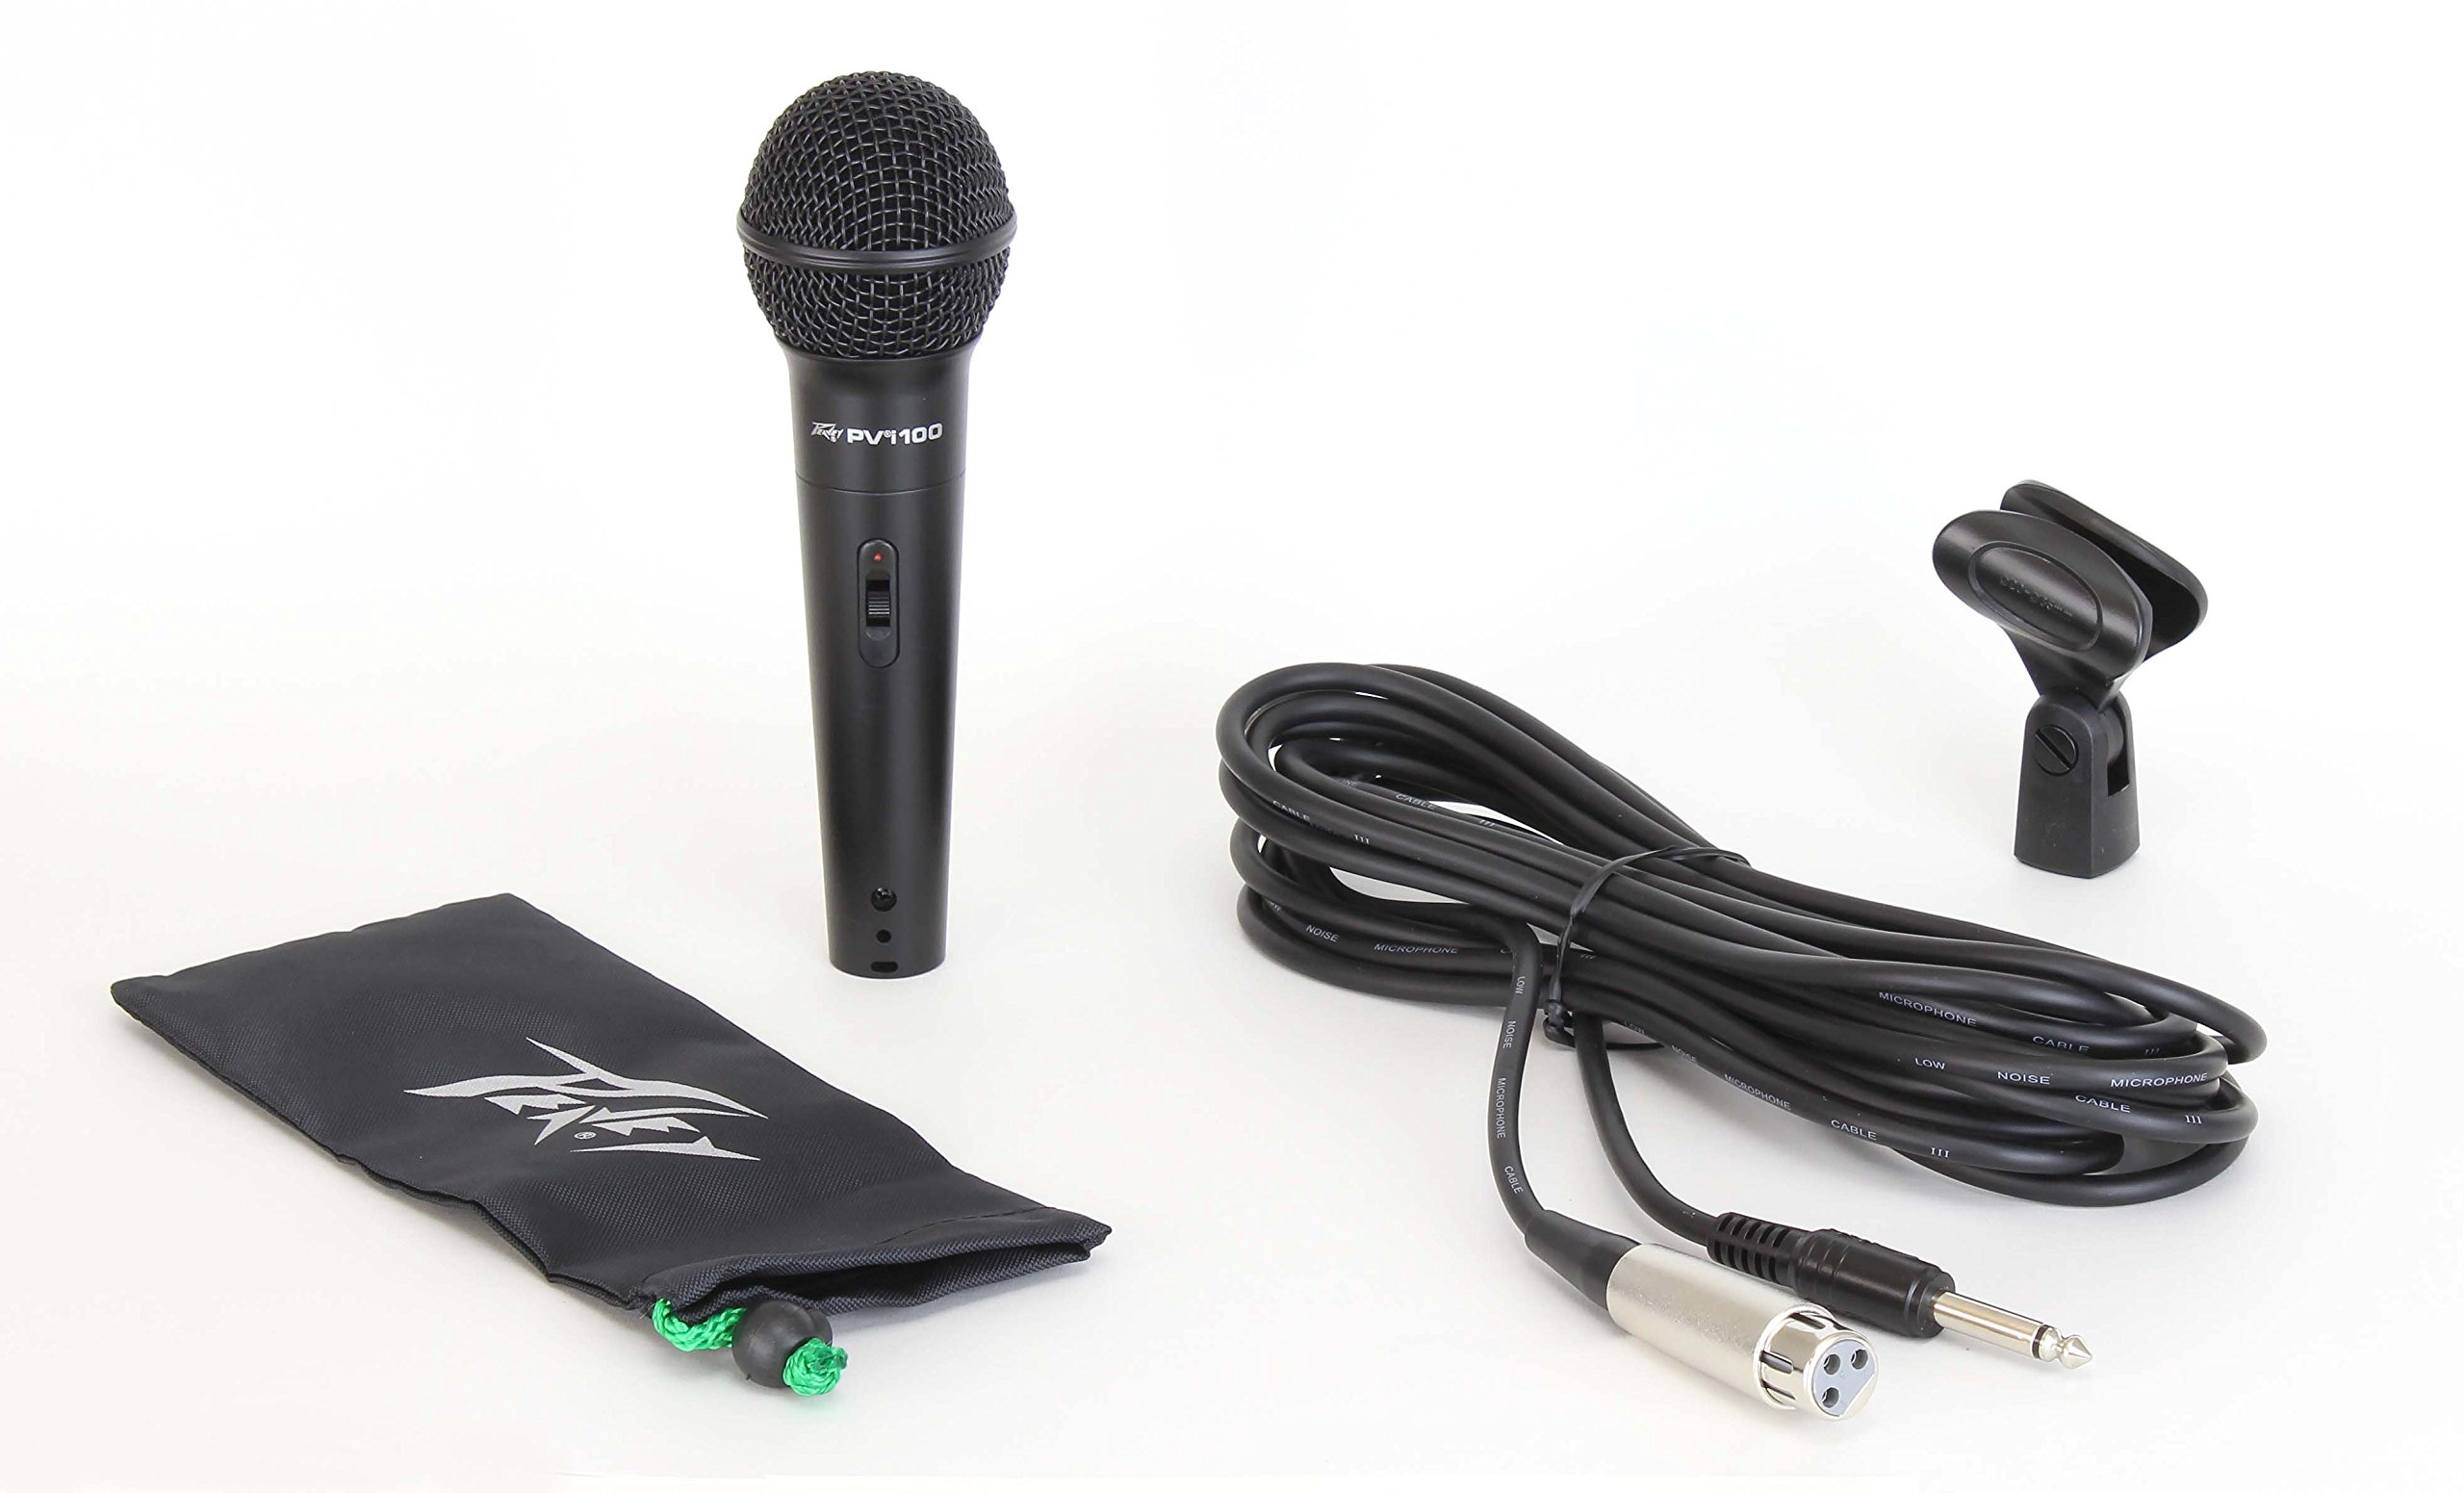 Peavey Pvi 100 Dynamic Vocal Cardiod Microphone with 1/4 Inch Cable and Clip by Peavey